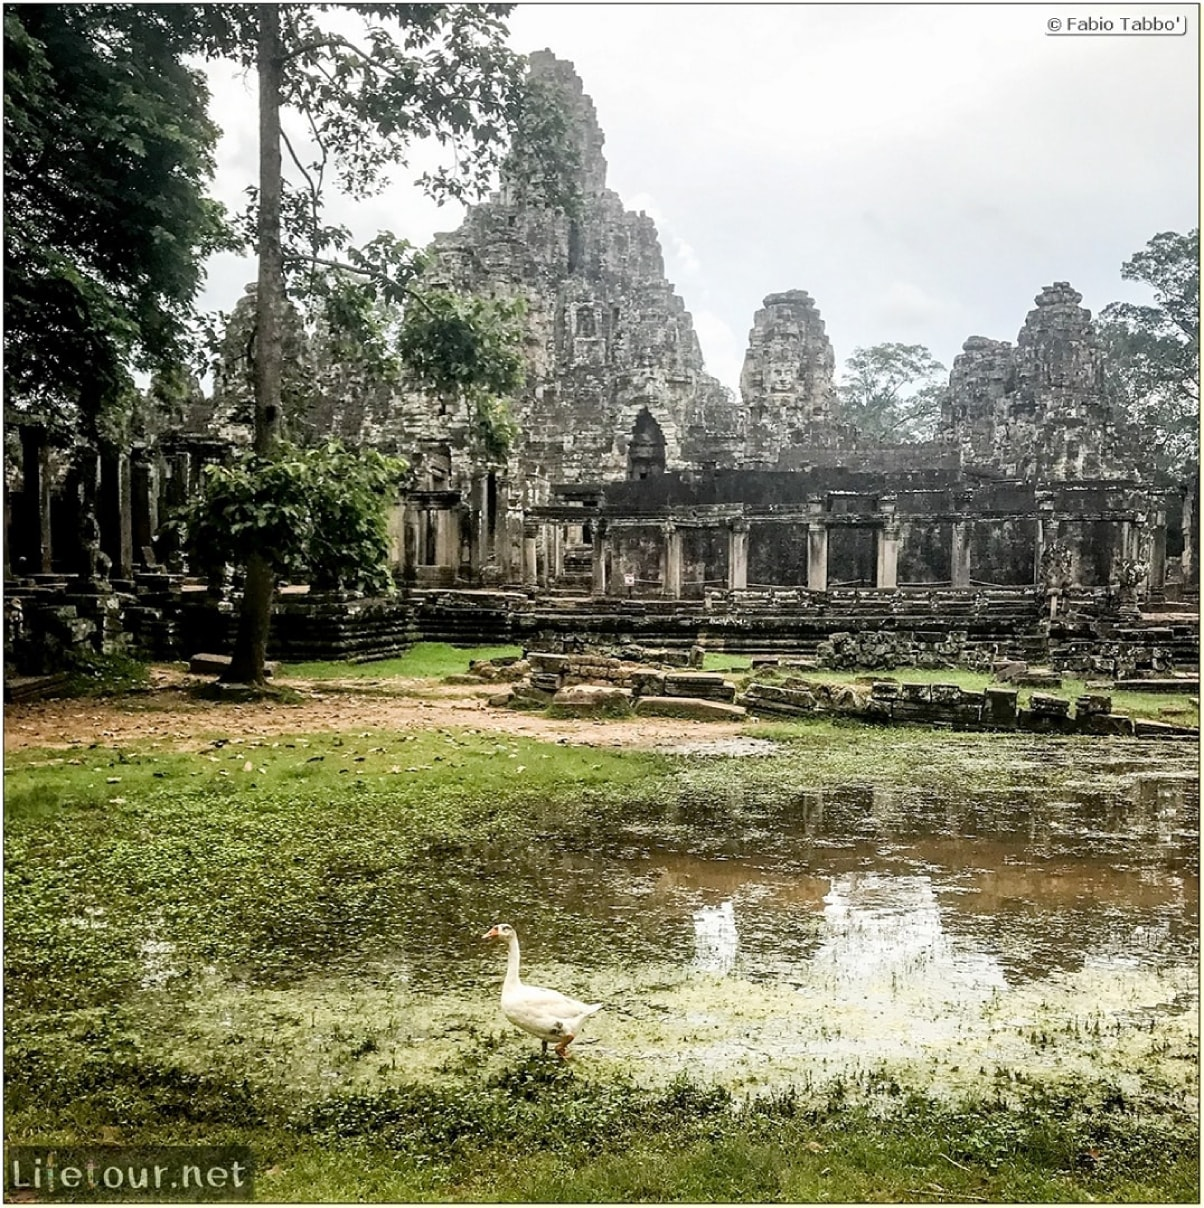 Fabio_s-LifeTour-Cambodia-2017-July-August-Siem-Reap-Angkor-Angkor-temples-Bayon-temple-18636-cover